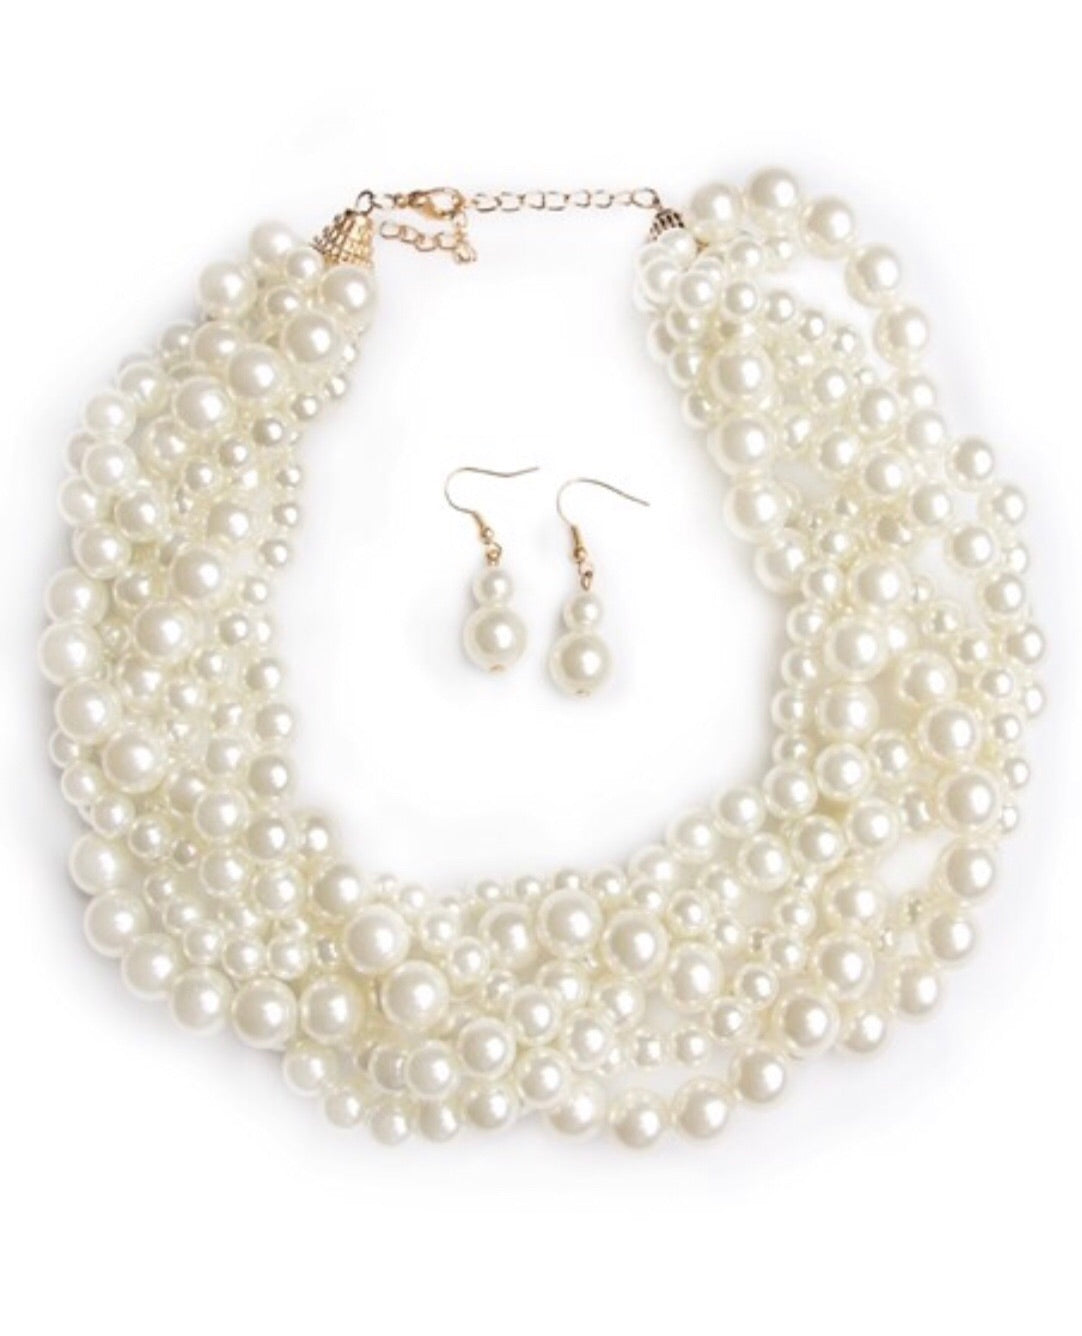 Clutching Pearl Choker Necklace Set